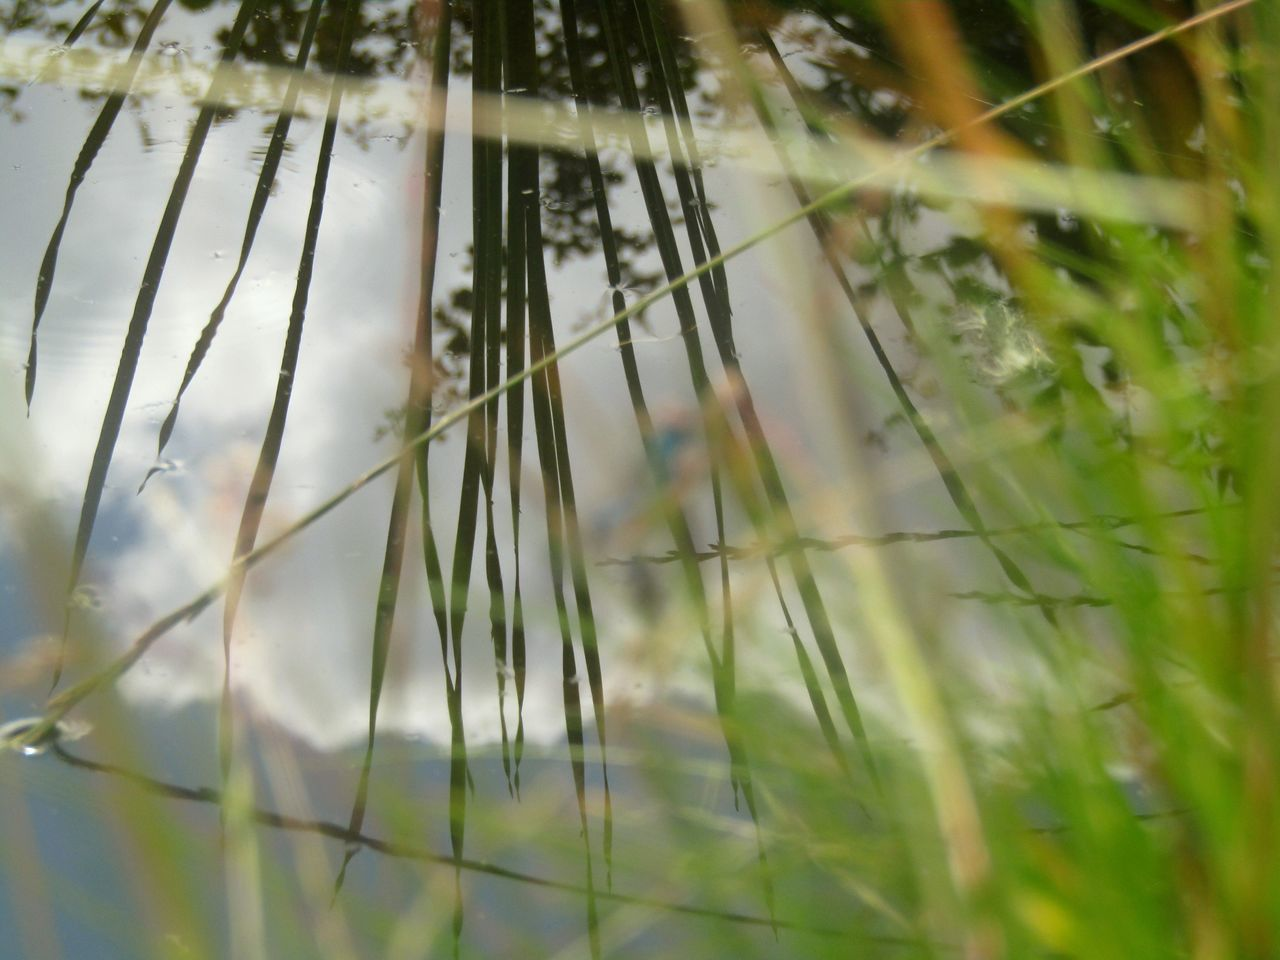 nature, growth, grass, day, no people, outdoors, selective focus, plant, beauty in nature, close-up, fragility, water, freshness